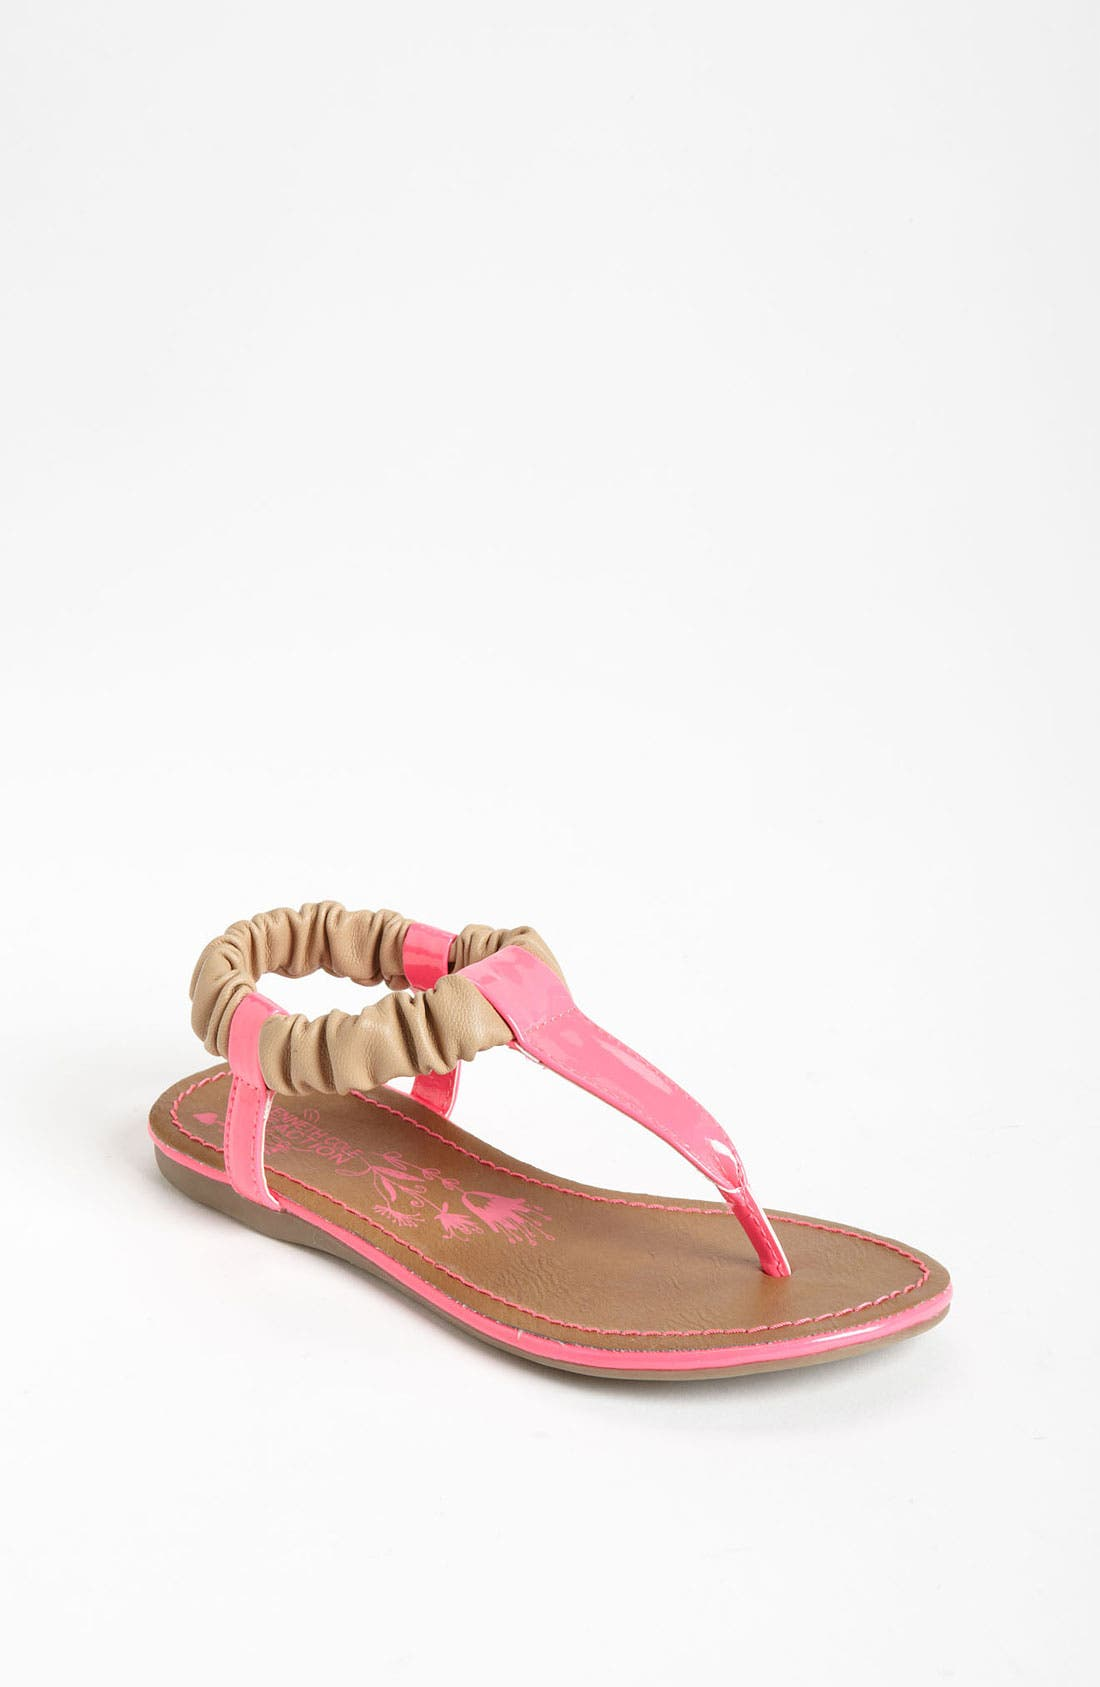 Alternate Image 1 Selected - Kenneth Cole Reaction 'Same Float' Sandal (Walker, Toddler, Little Kid & Big Kid)